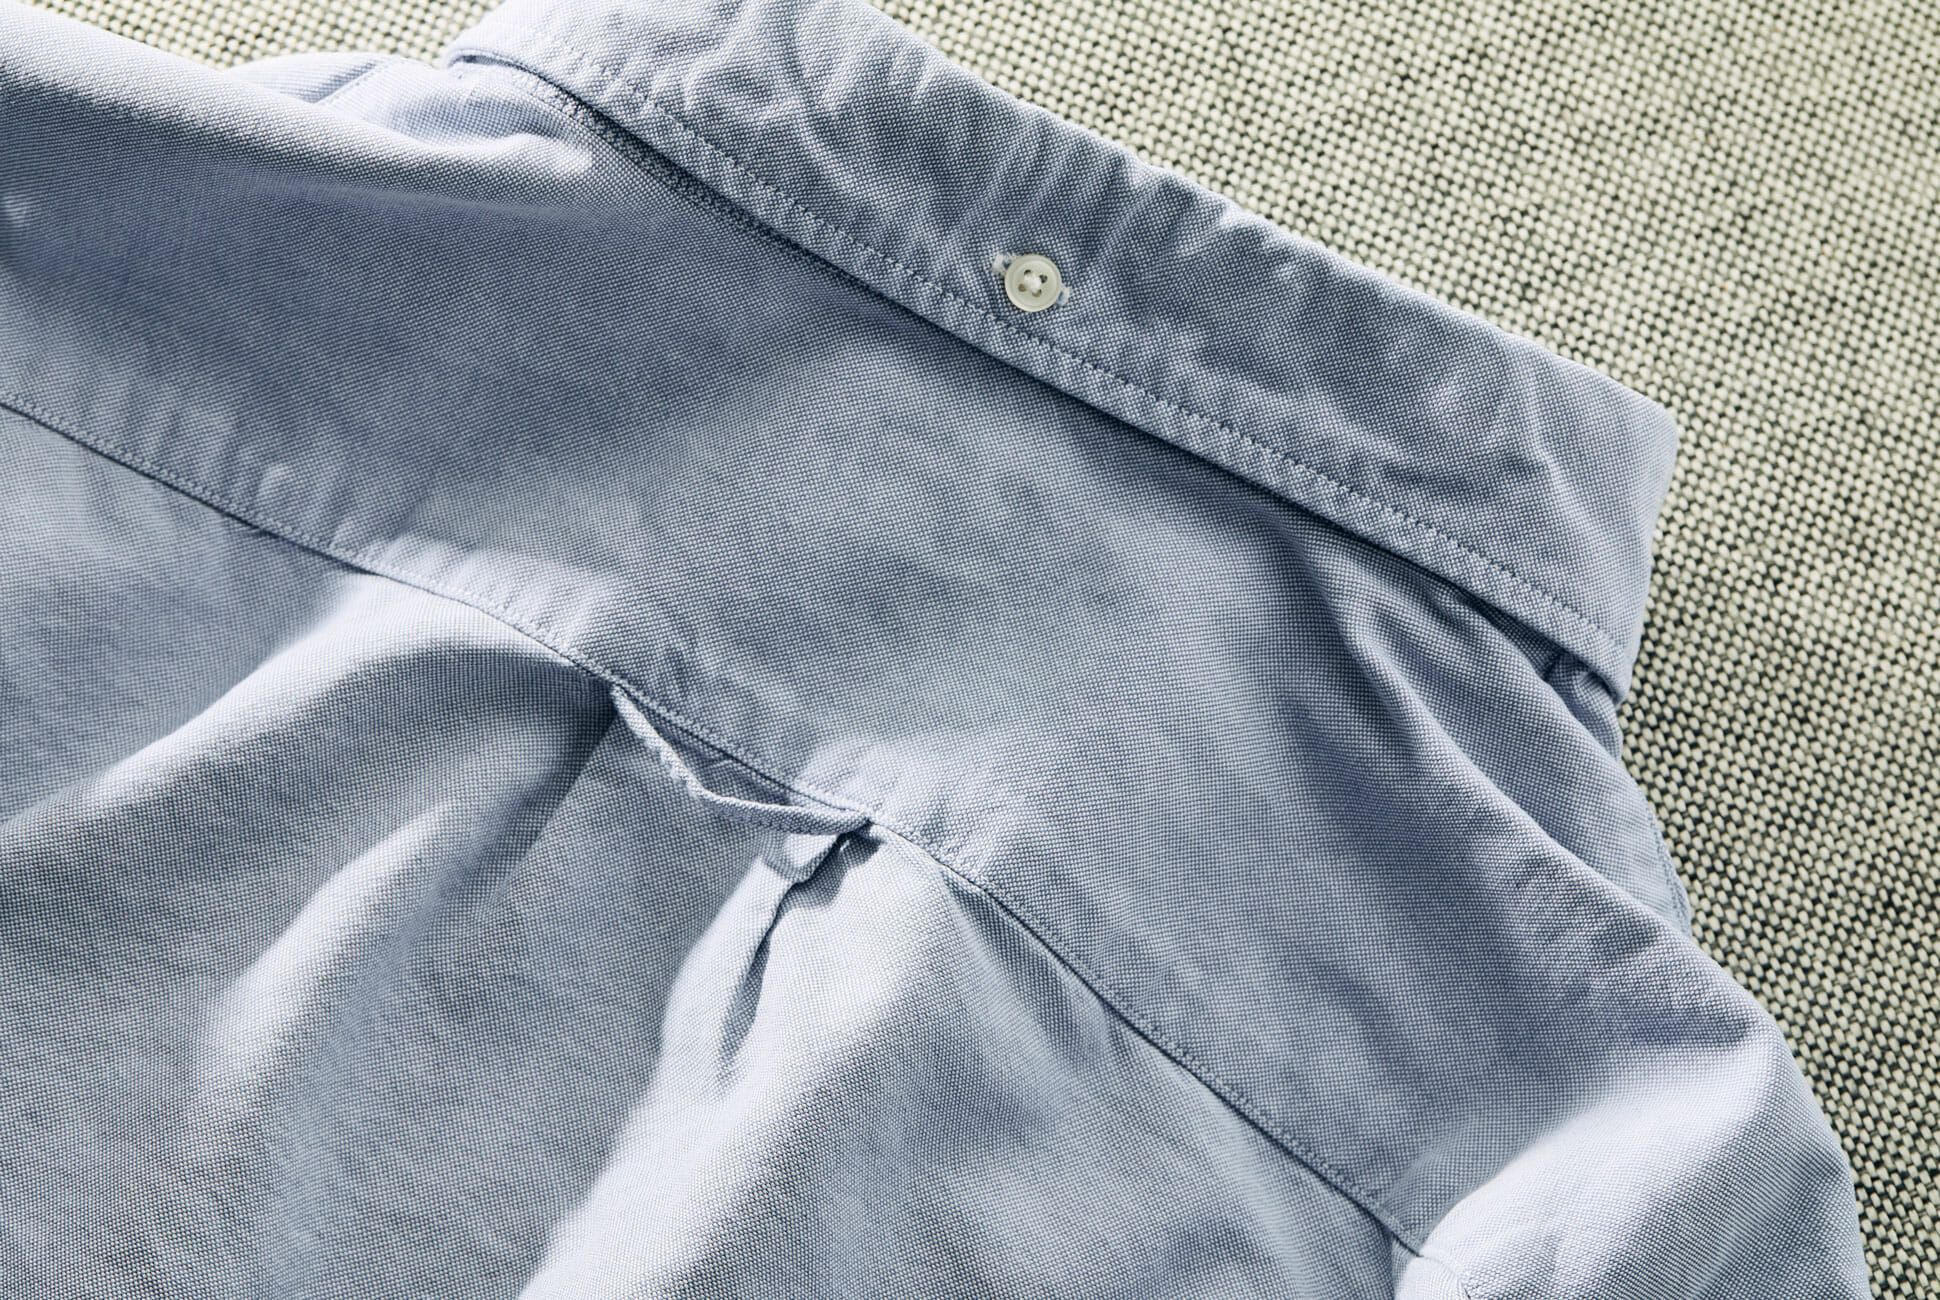 Ever Wonder Why There's a Loop on the Back of Your Button-Down ...